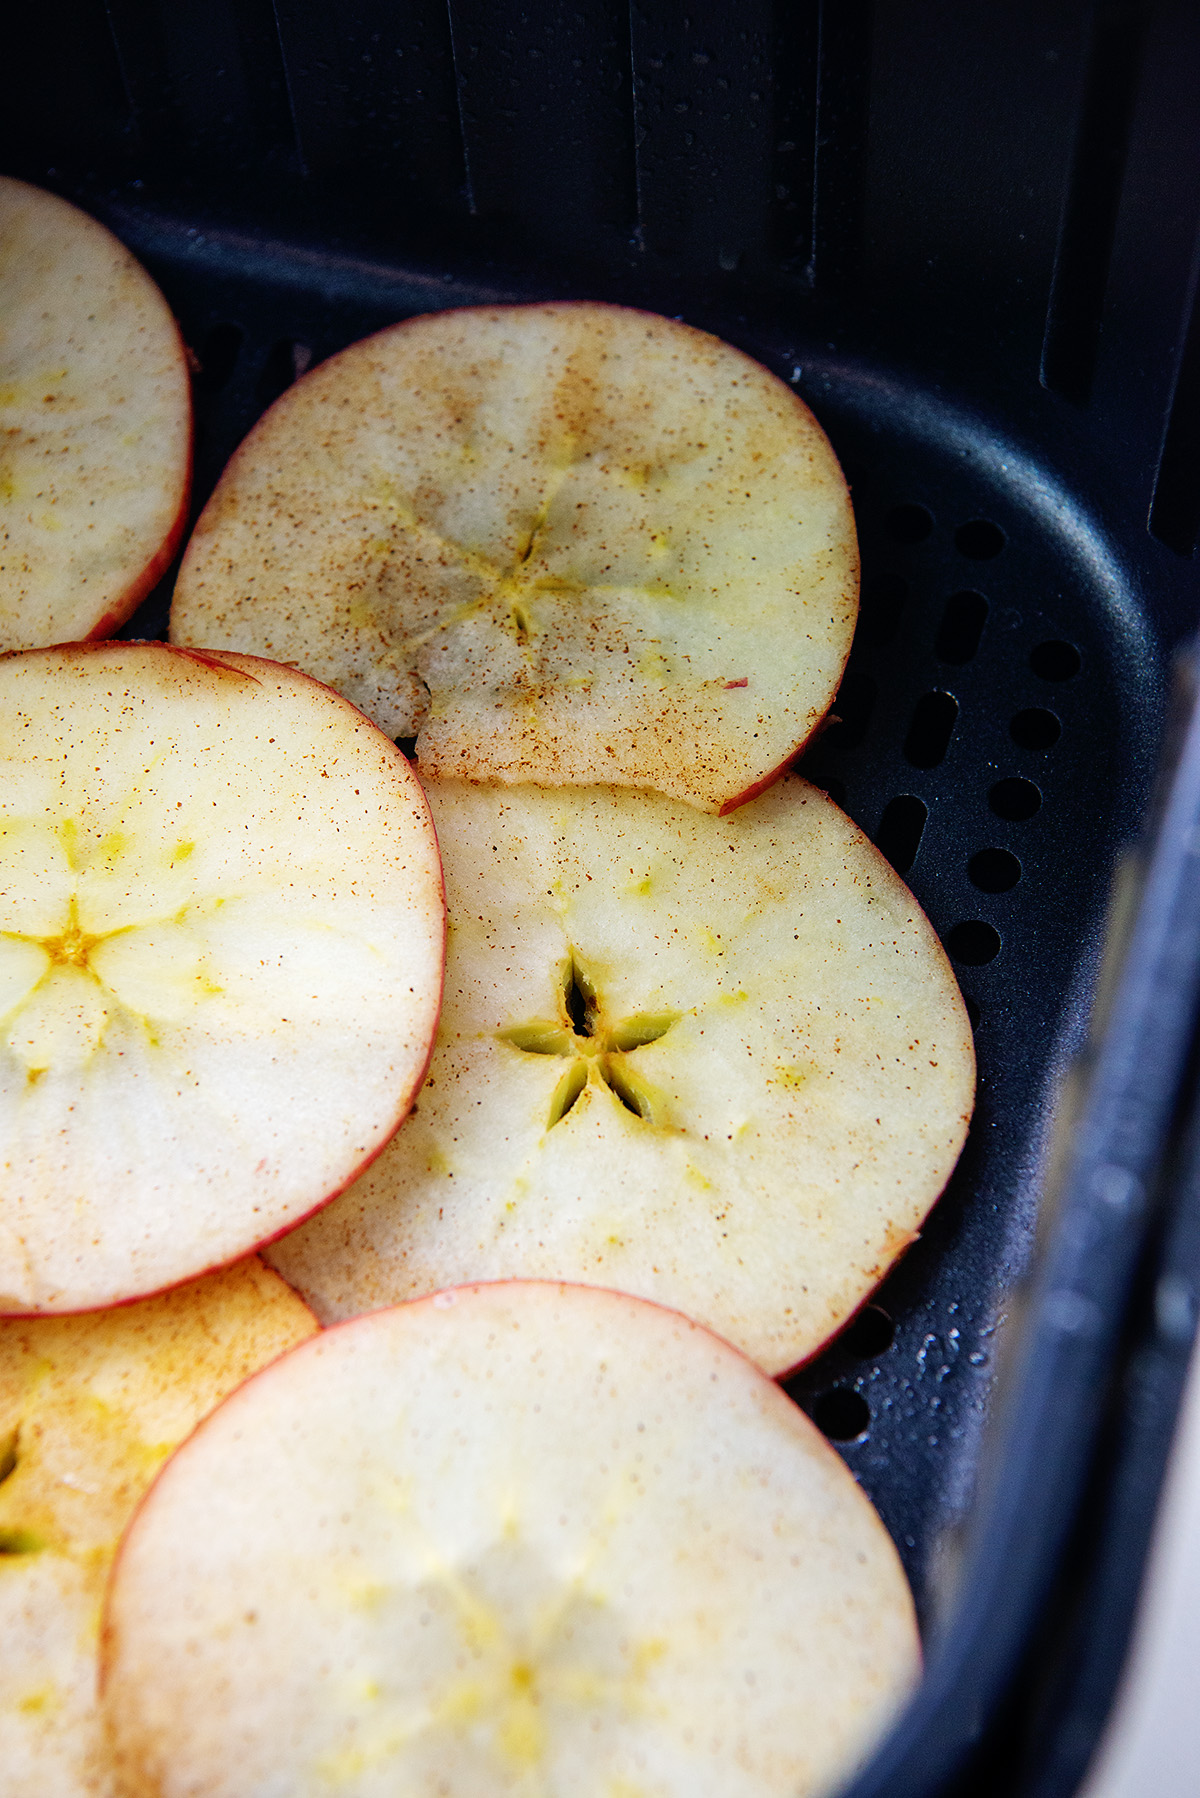 Sliced apples in an air fryer basket with cinnamon on them.